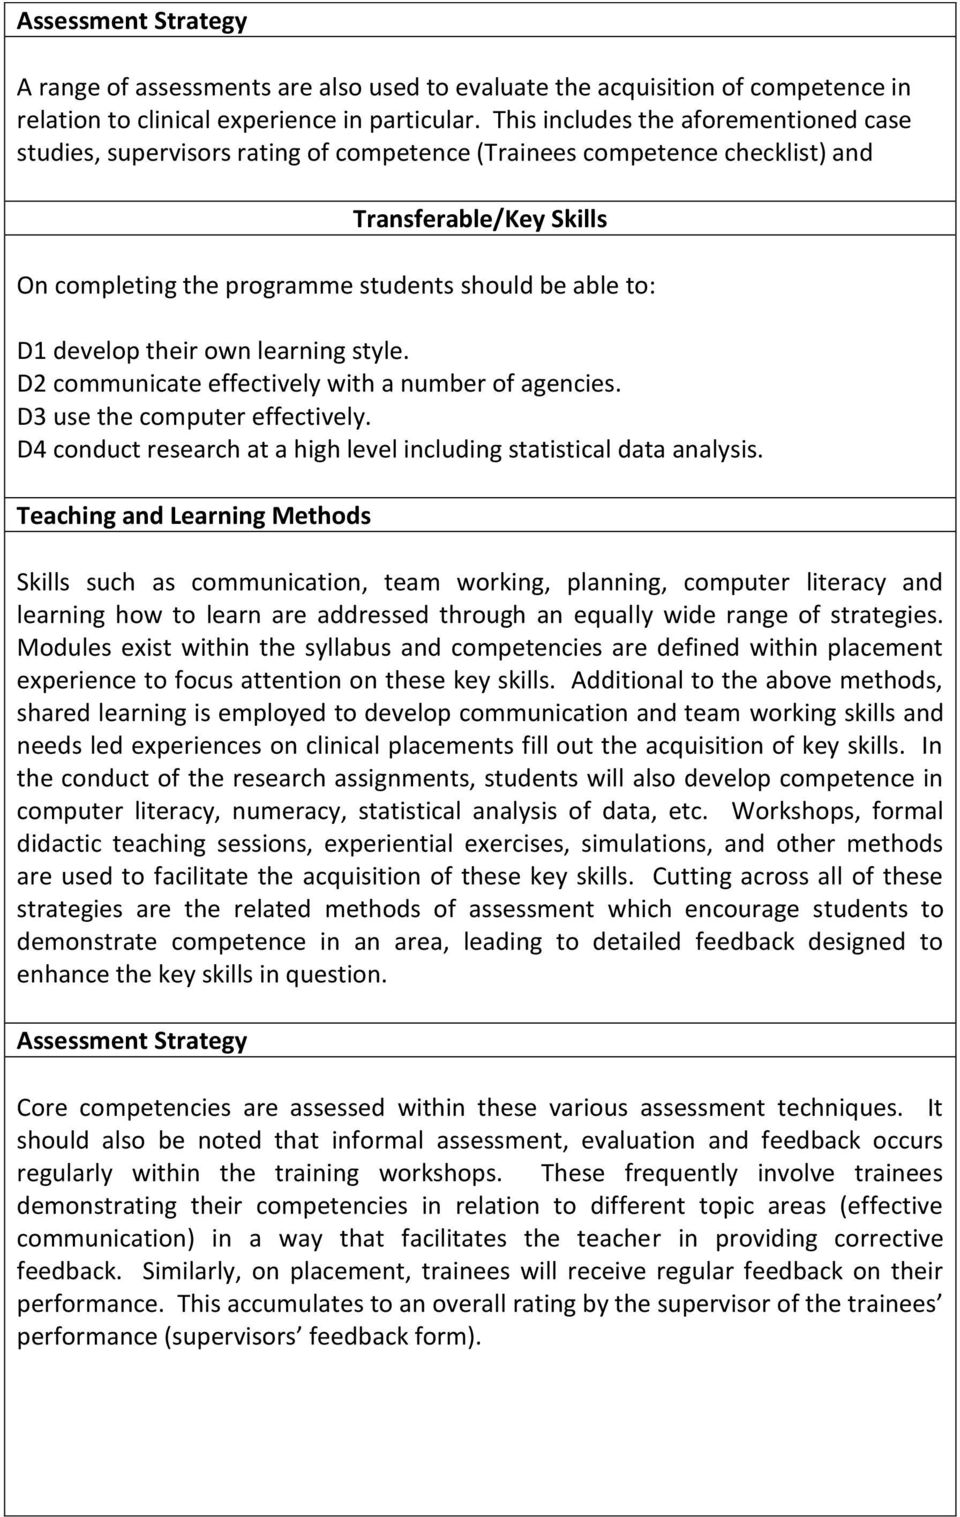 develop their own learning style. D2 communicate effectively with a number of agencies. D3 use the computer effectively. D4 conduct research at a high level including statistical data analysis.